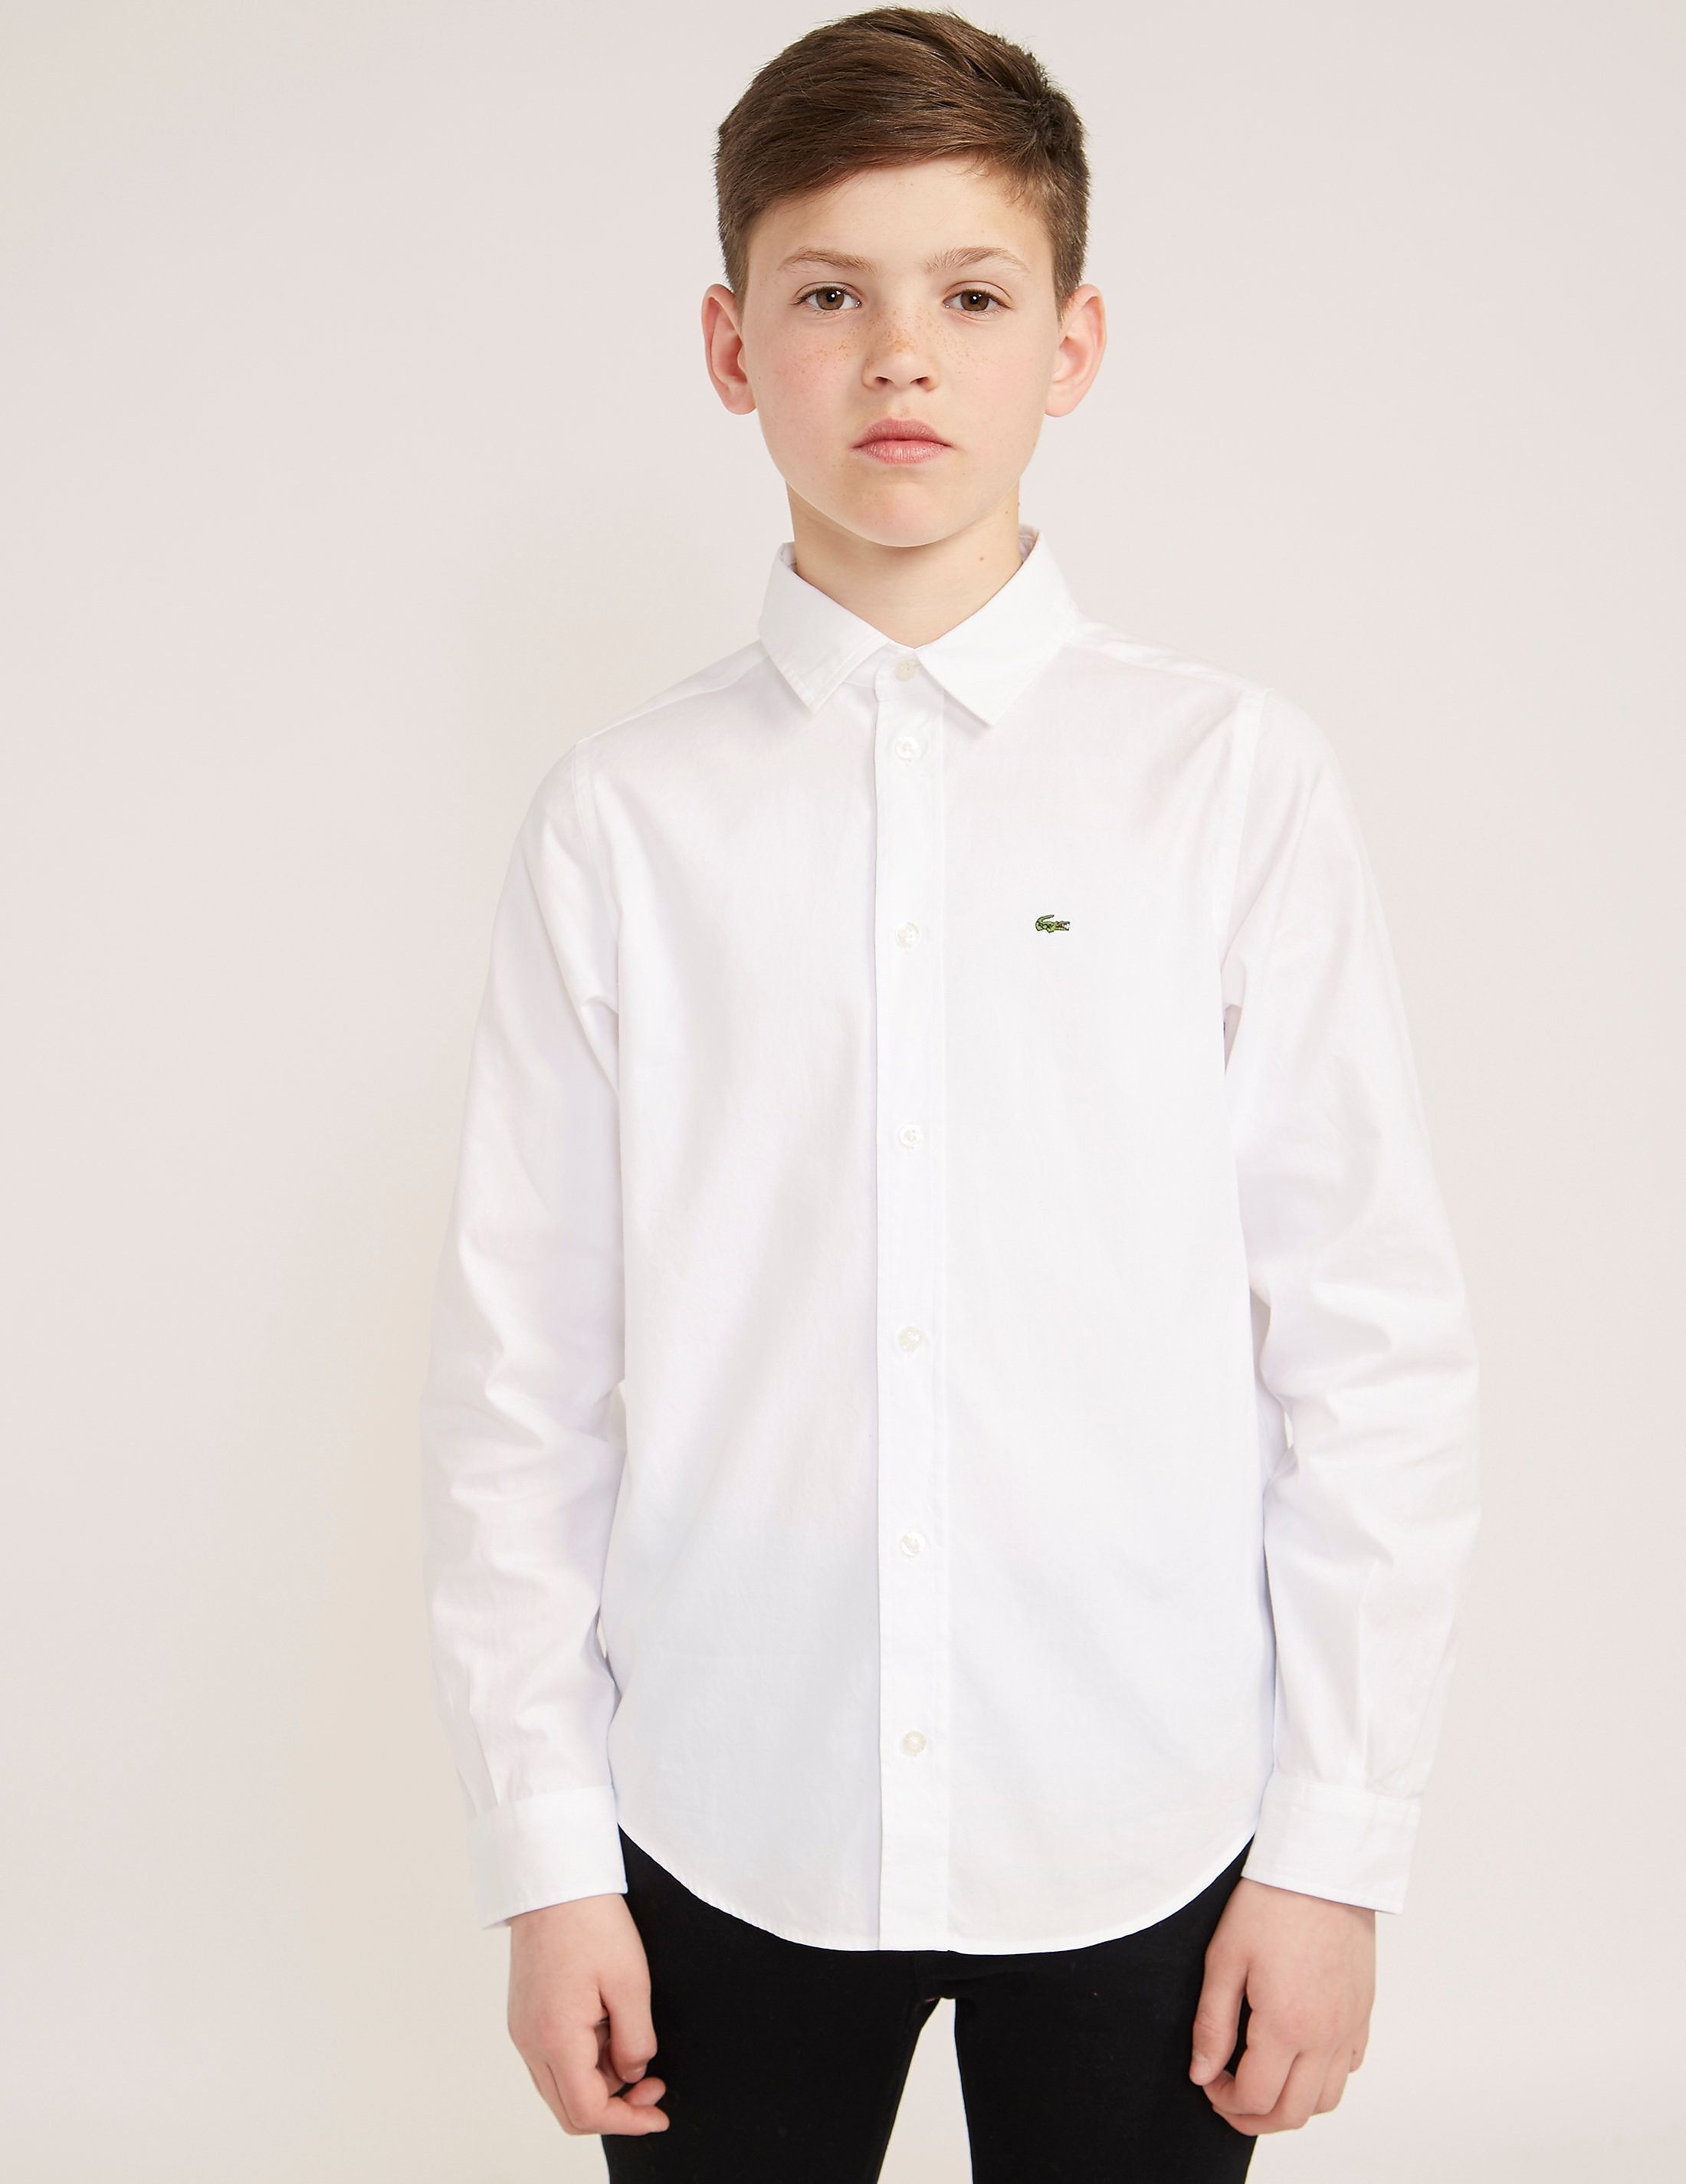 Lacoste Long Sleeve Oxford Shirt